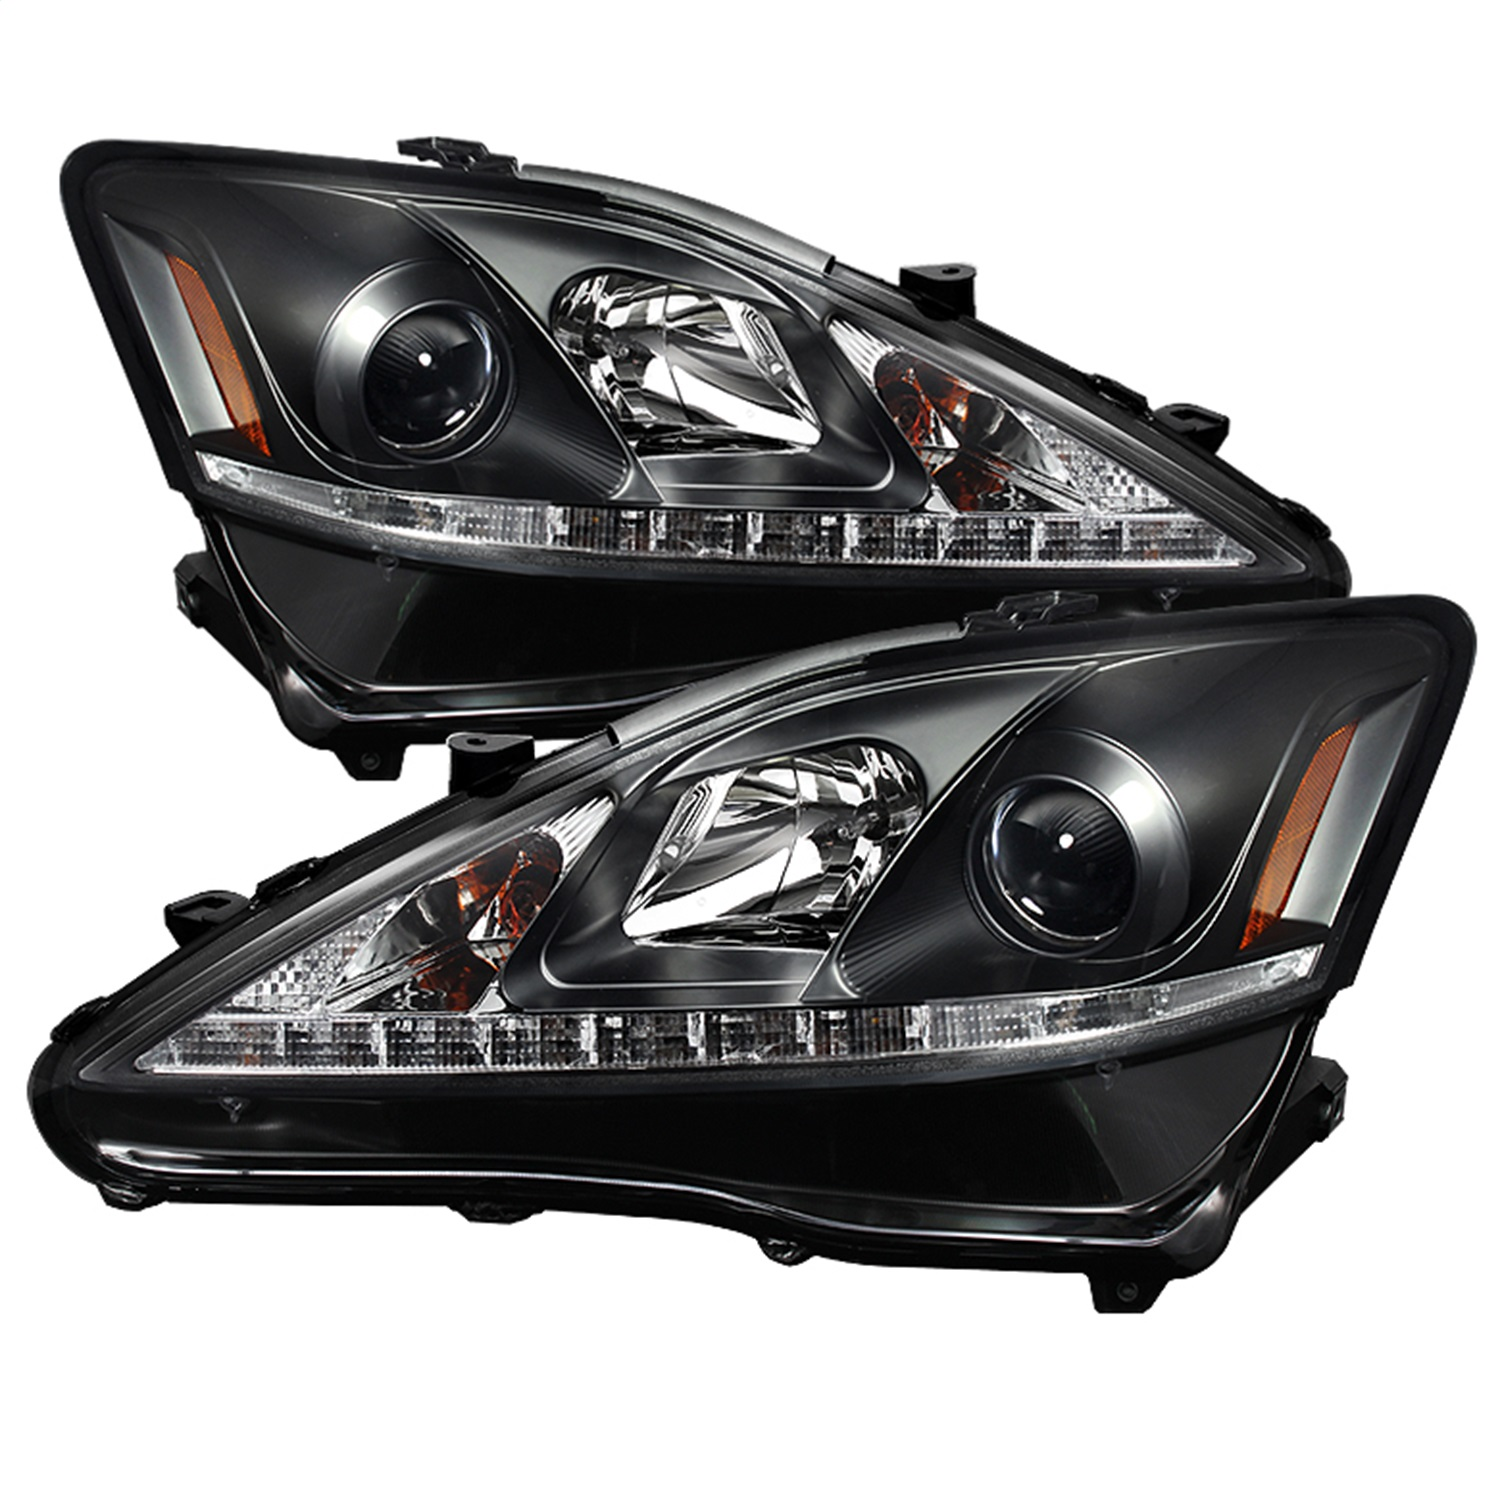 Spyder Auto DRL Projector Headlights Fits 06 10 IS250 IS350